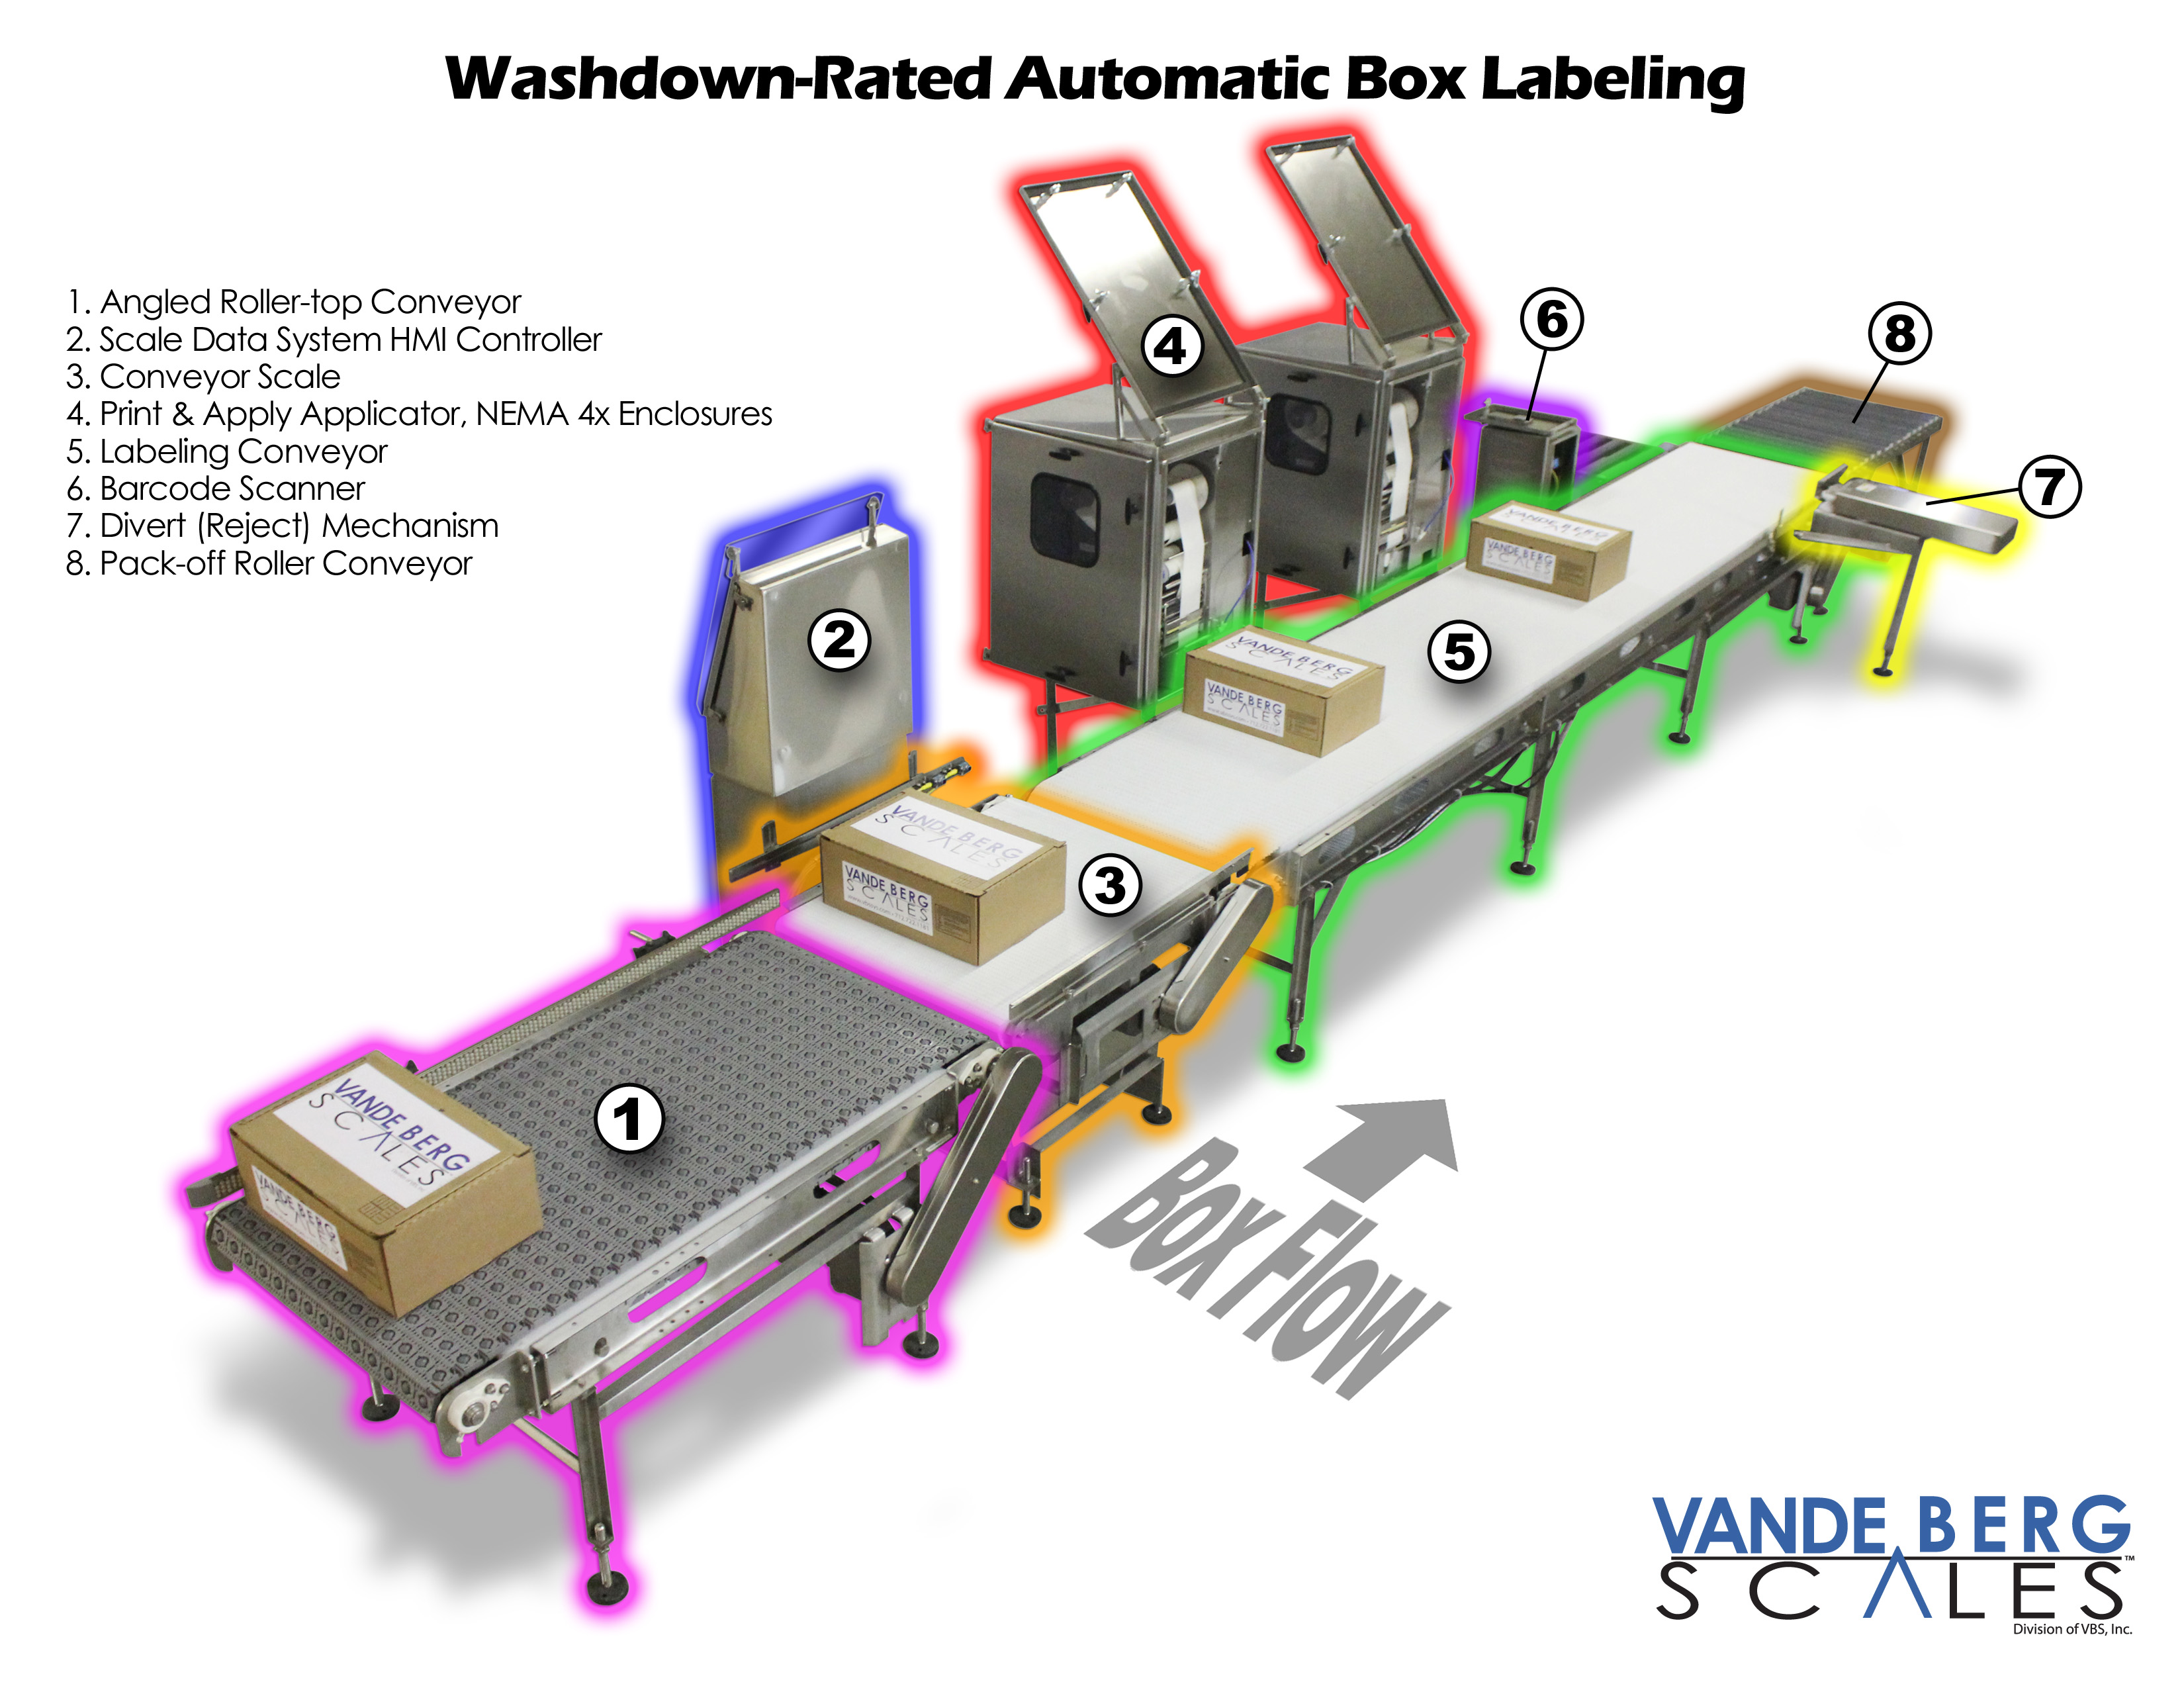 Automatic washdown-rated box labeling system which includes, aligning, label application, database generation and barcode verification.